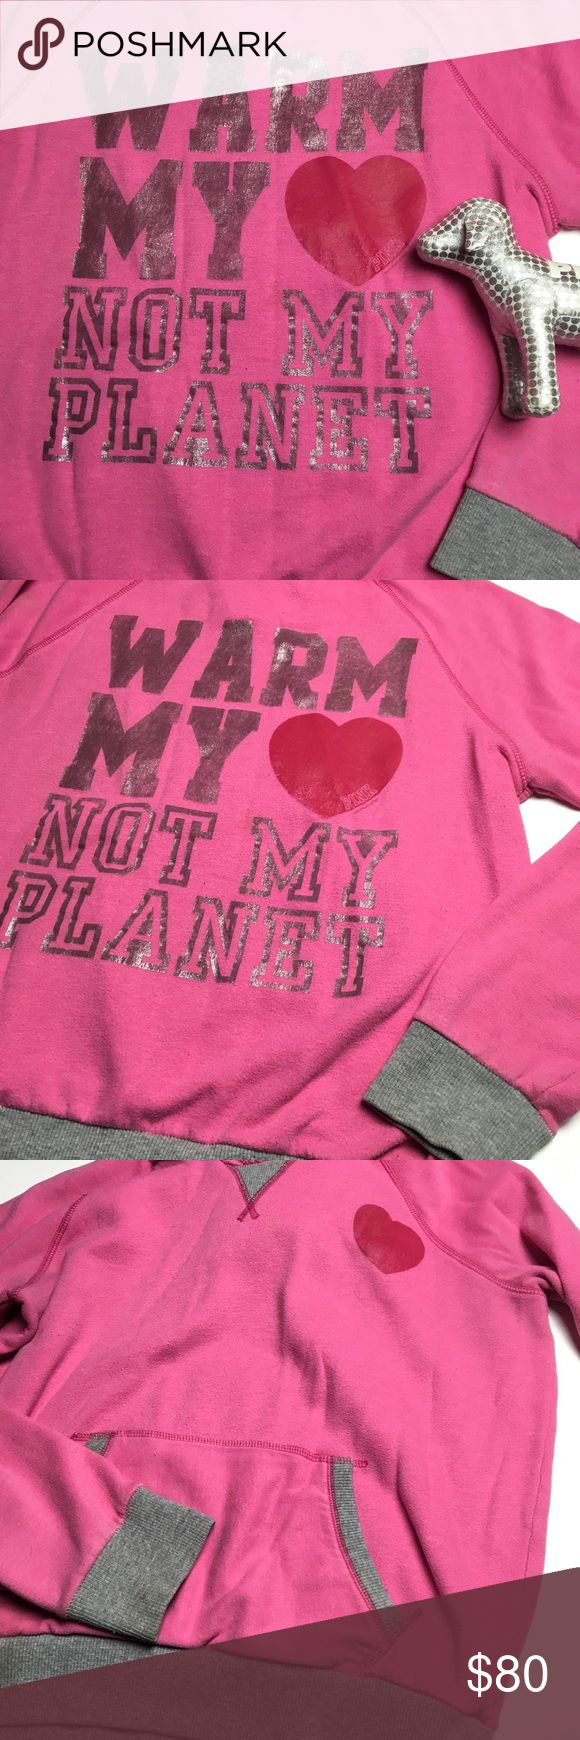 """Climate Change Is Real 💕🌎💕 VS PINK hoodie with gray trimmed kangaroo pocket, sleeves, hem, and neck. It's been worn and washed a few times. Stretchy, soft fabric. Show off your love of science and support our planet in style! Going to one of the upcoming Climate or Science Marches? This would be a great hoodie to wear in support! Graphic says, """"Warm My Heart 💗 Not My Planet"""" There are minor stains at the sleeves, hem and near the heart on the chest. (See last 2 photos for details) Please…"""